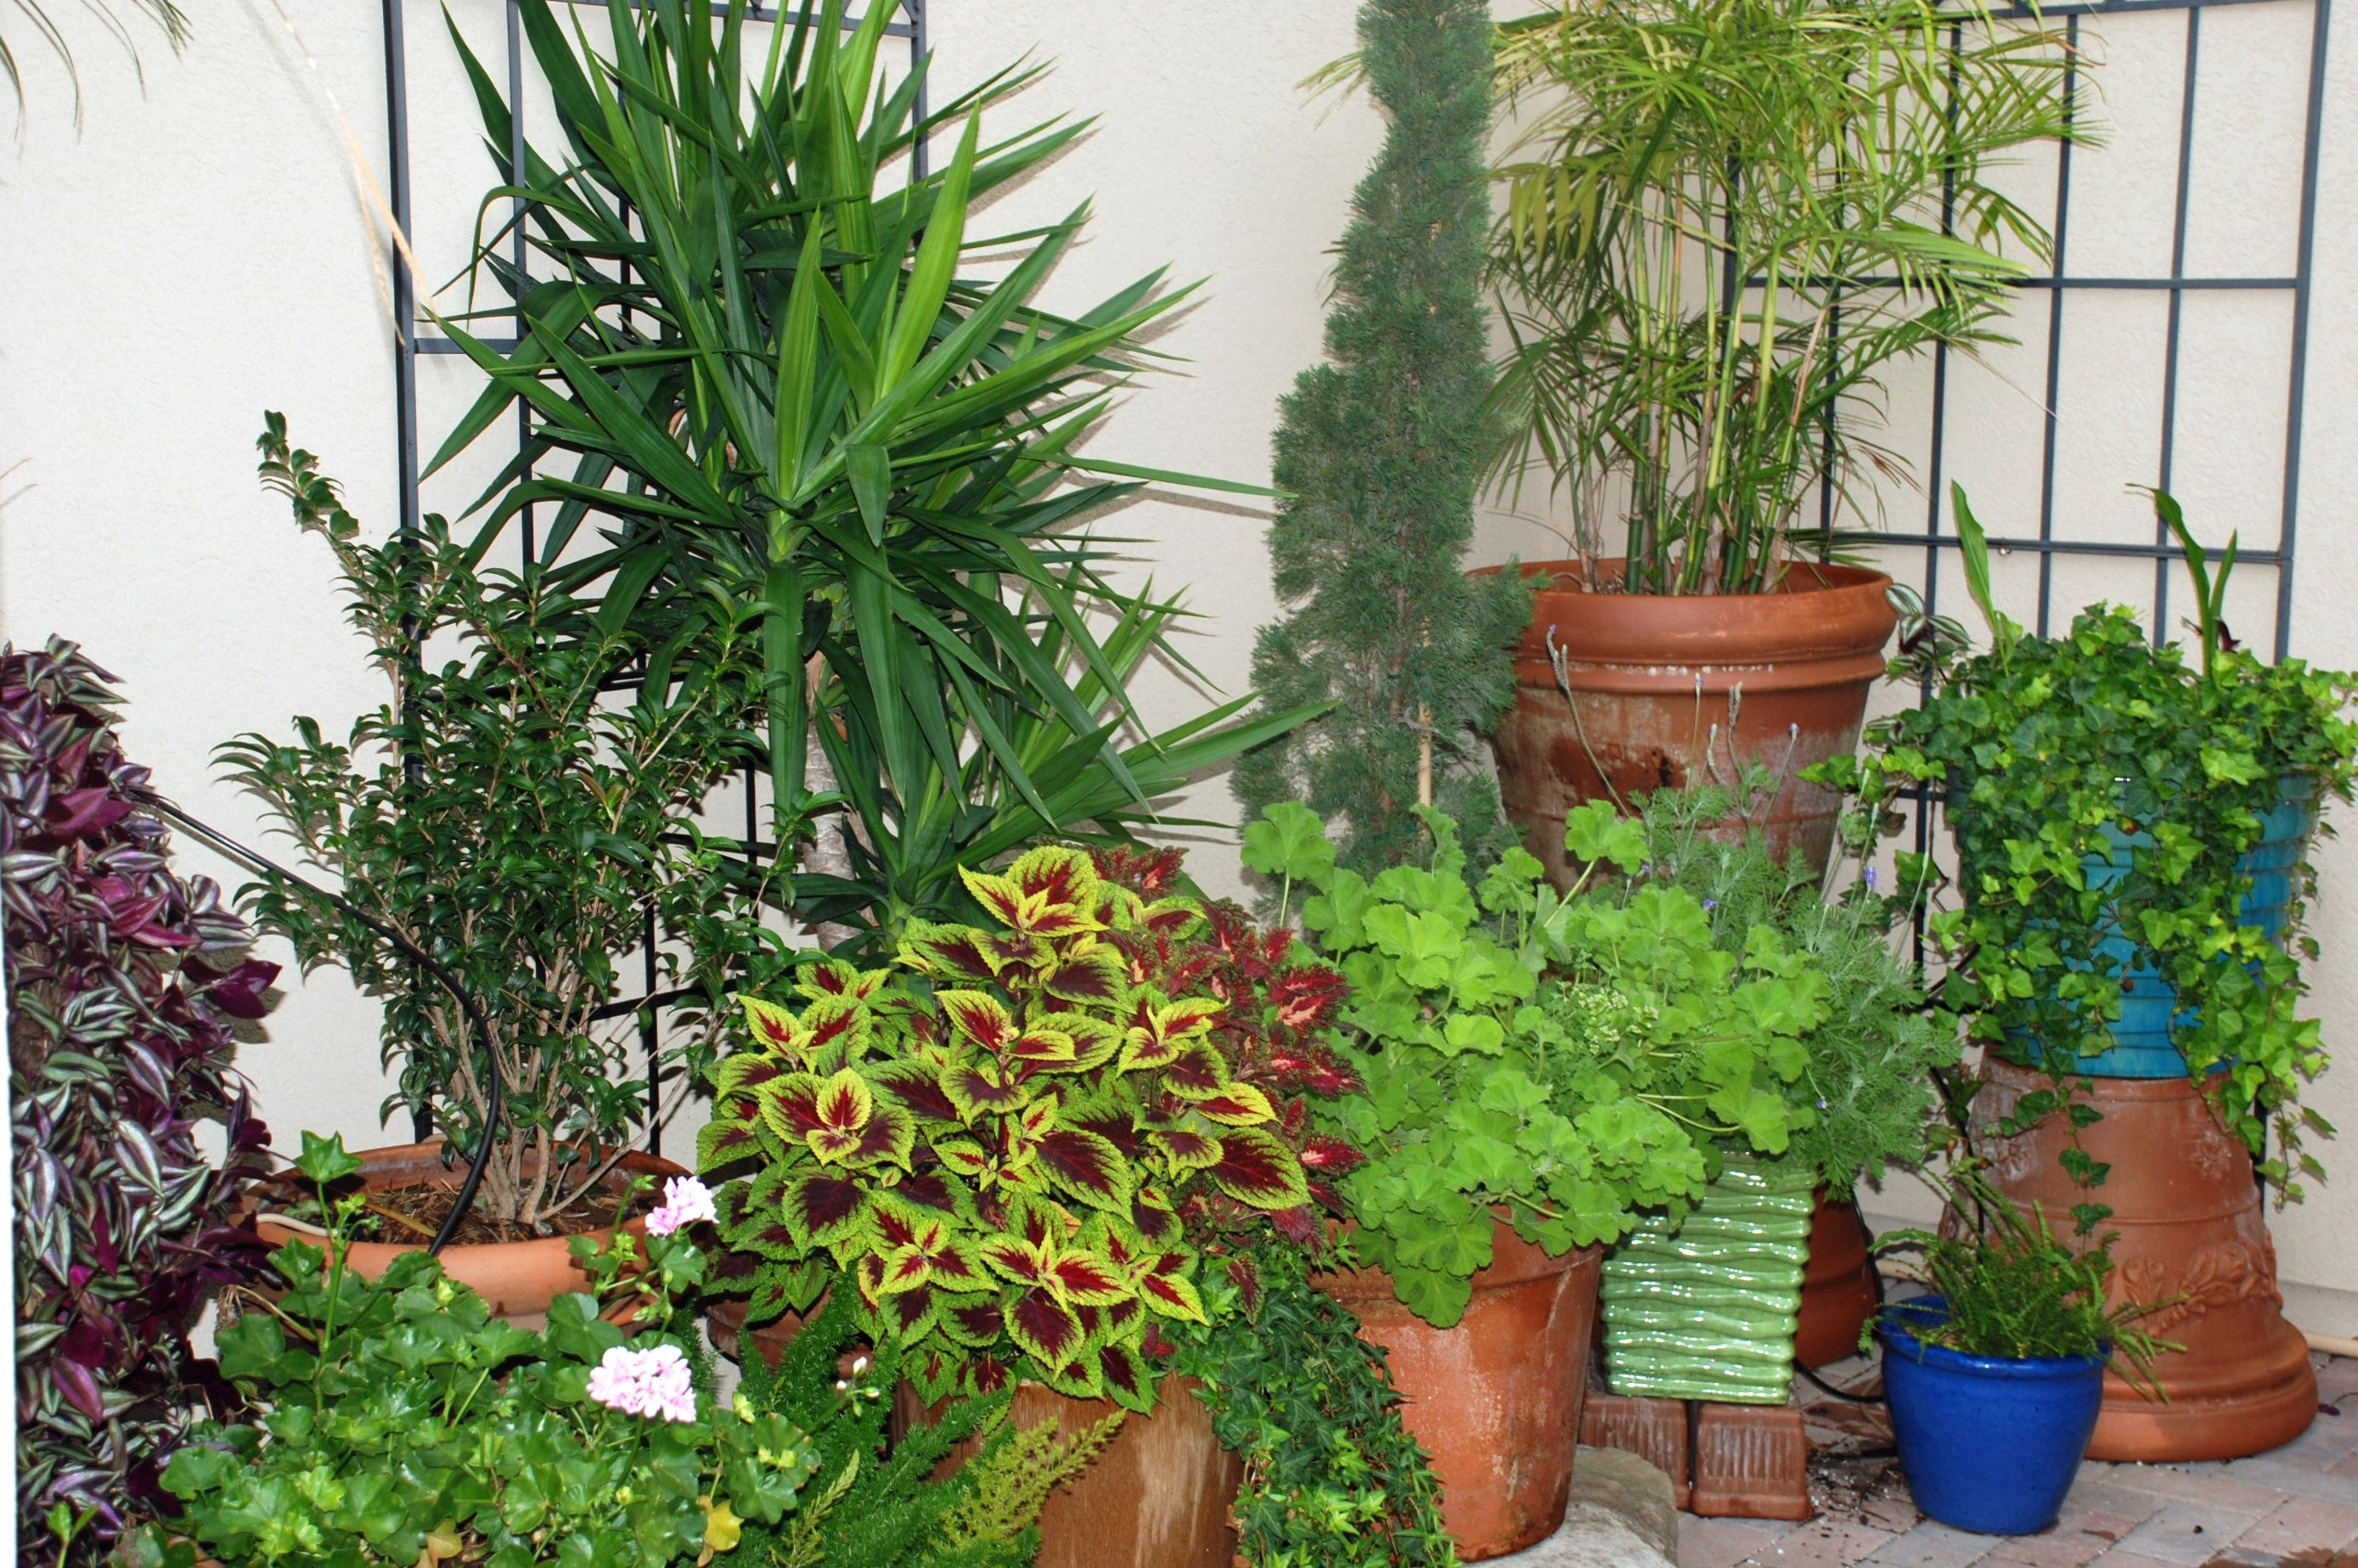 Easy Plants For North Florida Patio In Shade Coleus Foxtail Fern